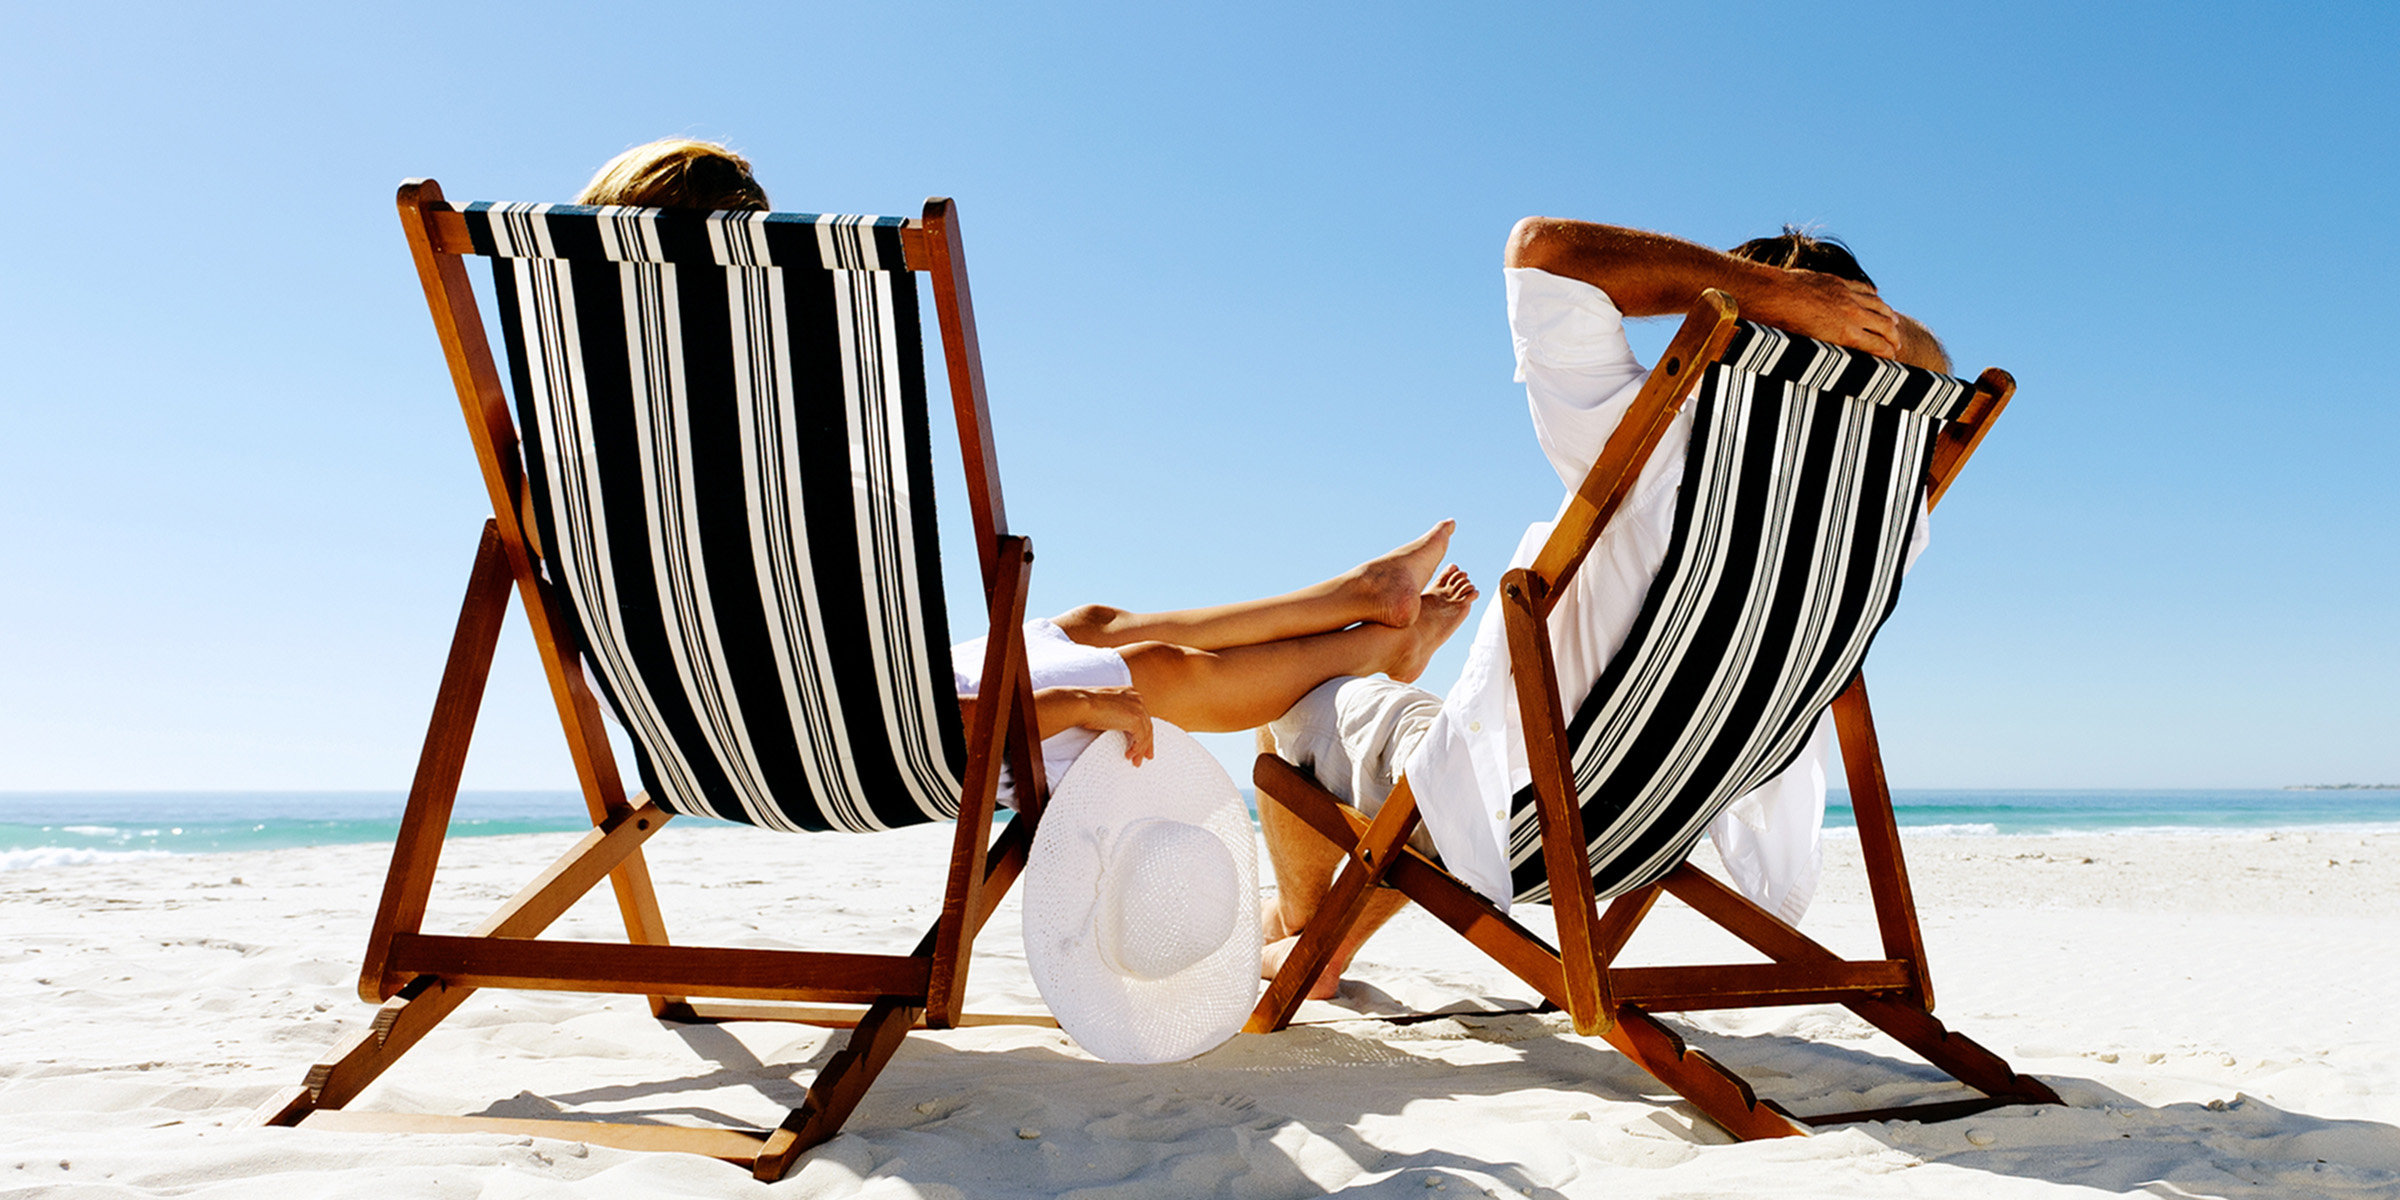 Favorite Deluxe Padded Chairs With Canopy And Tray Intended For The Best Chairs For The Beach (View 25 of 25)